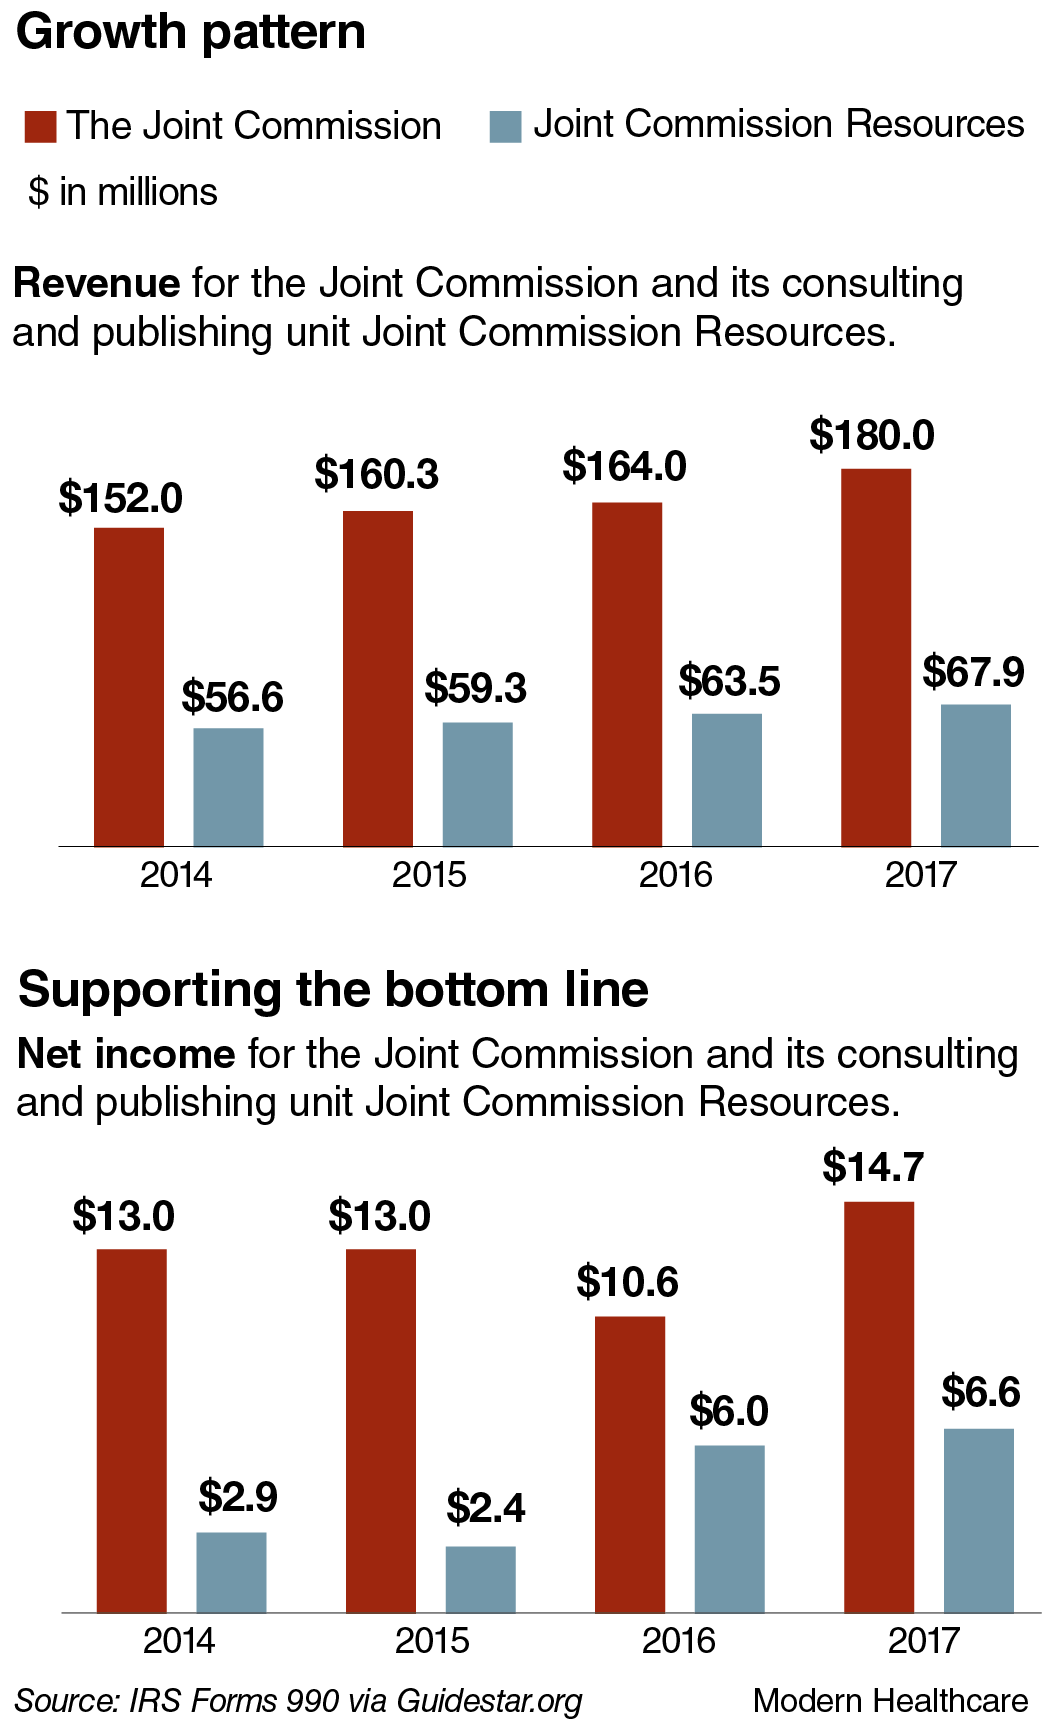 The Joint Commission's growth pattern